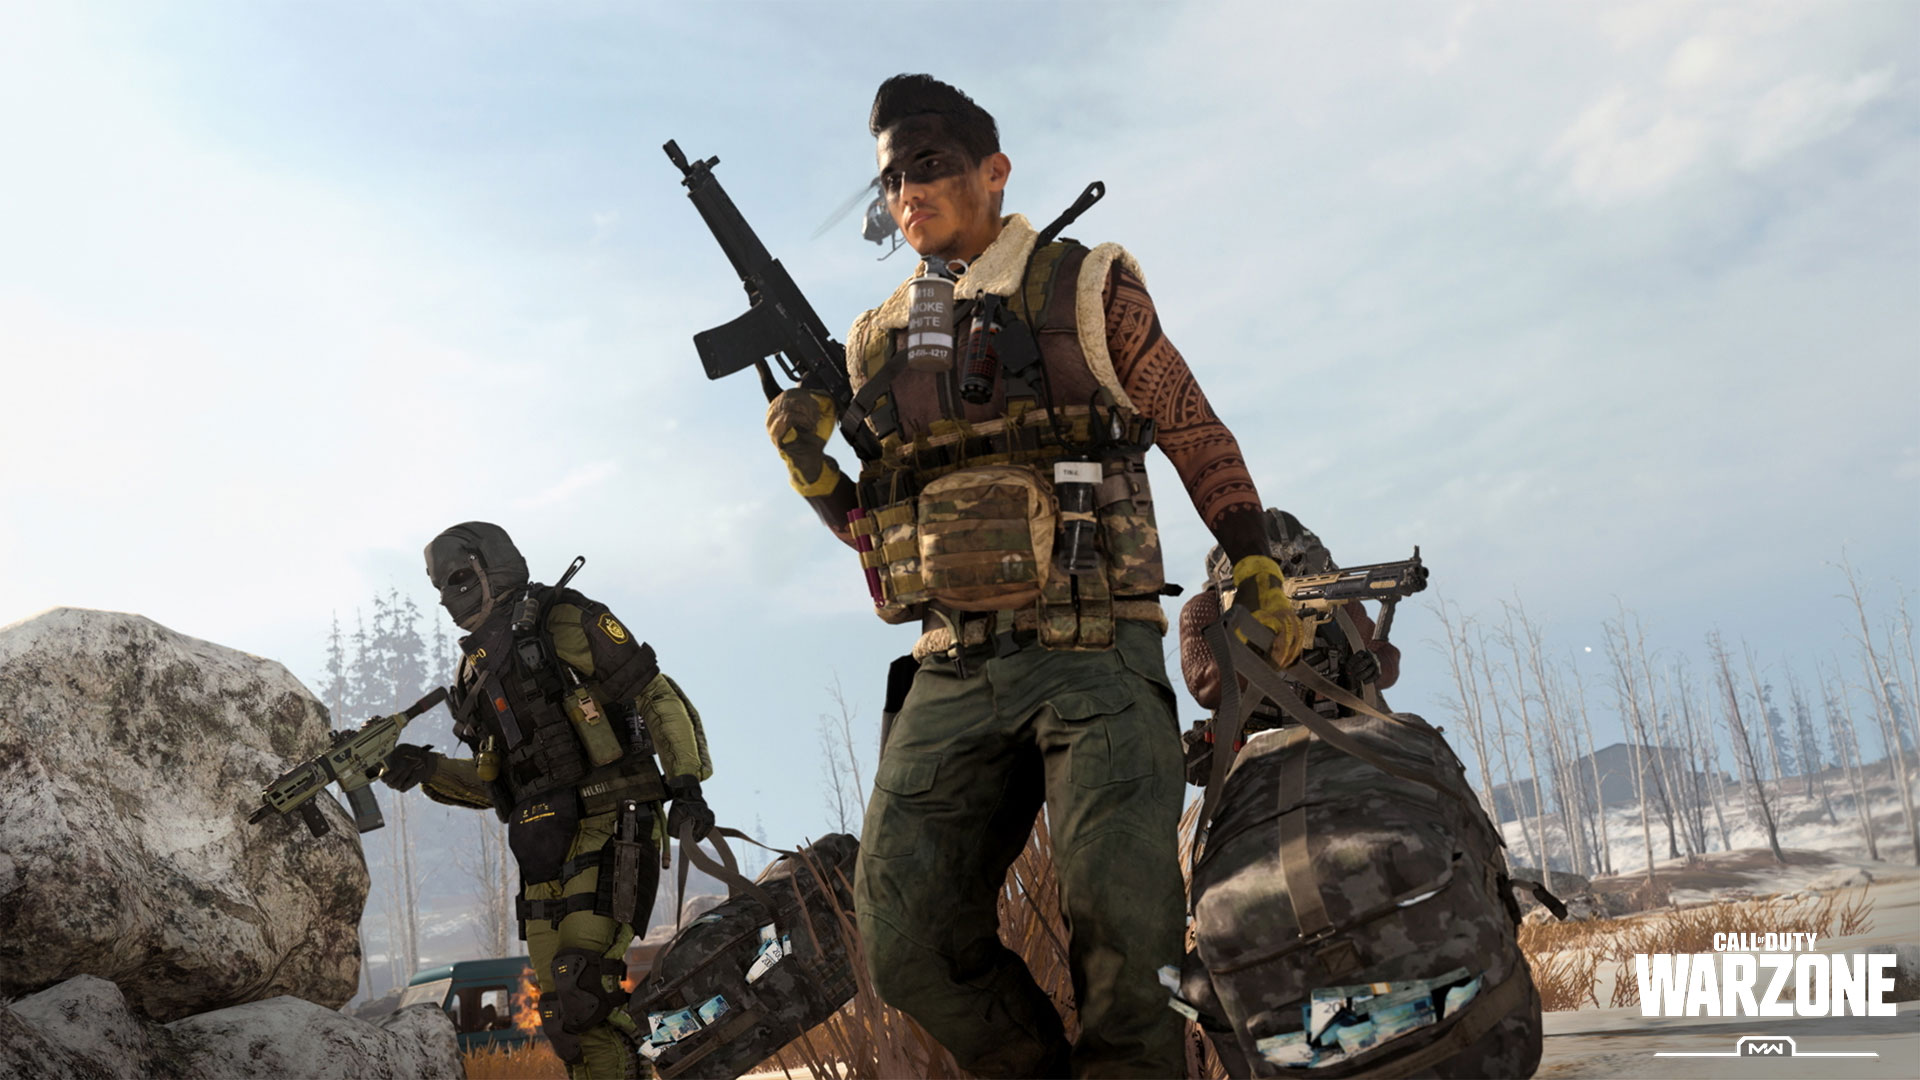 This Week in Call of Duty - March 30 - Image 8